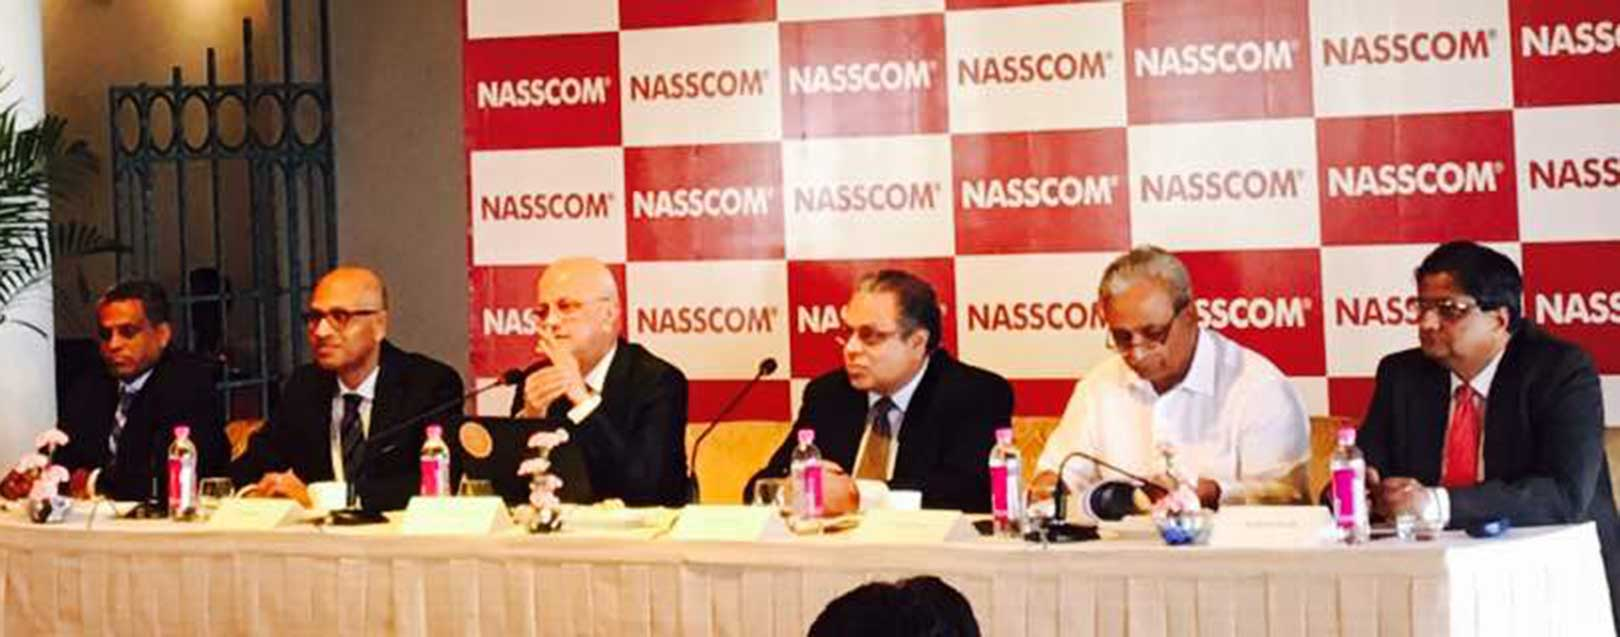 'We categorically reject the reports of mass layoffs in the sector', Chandrasekhar, NASSCOM